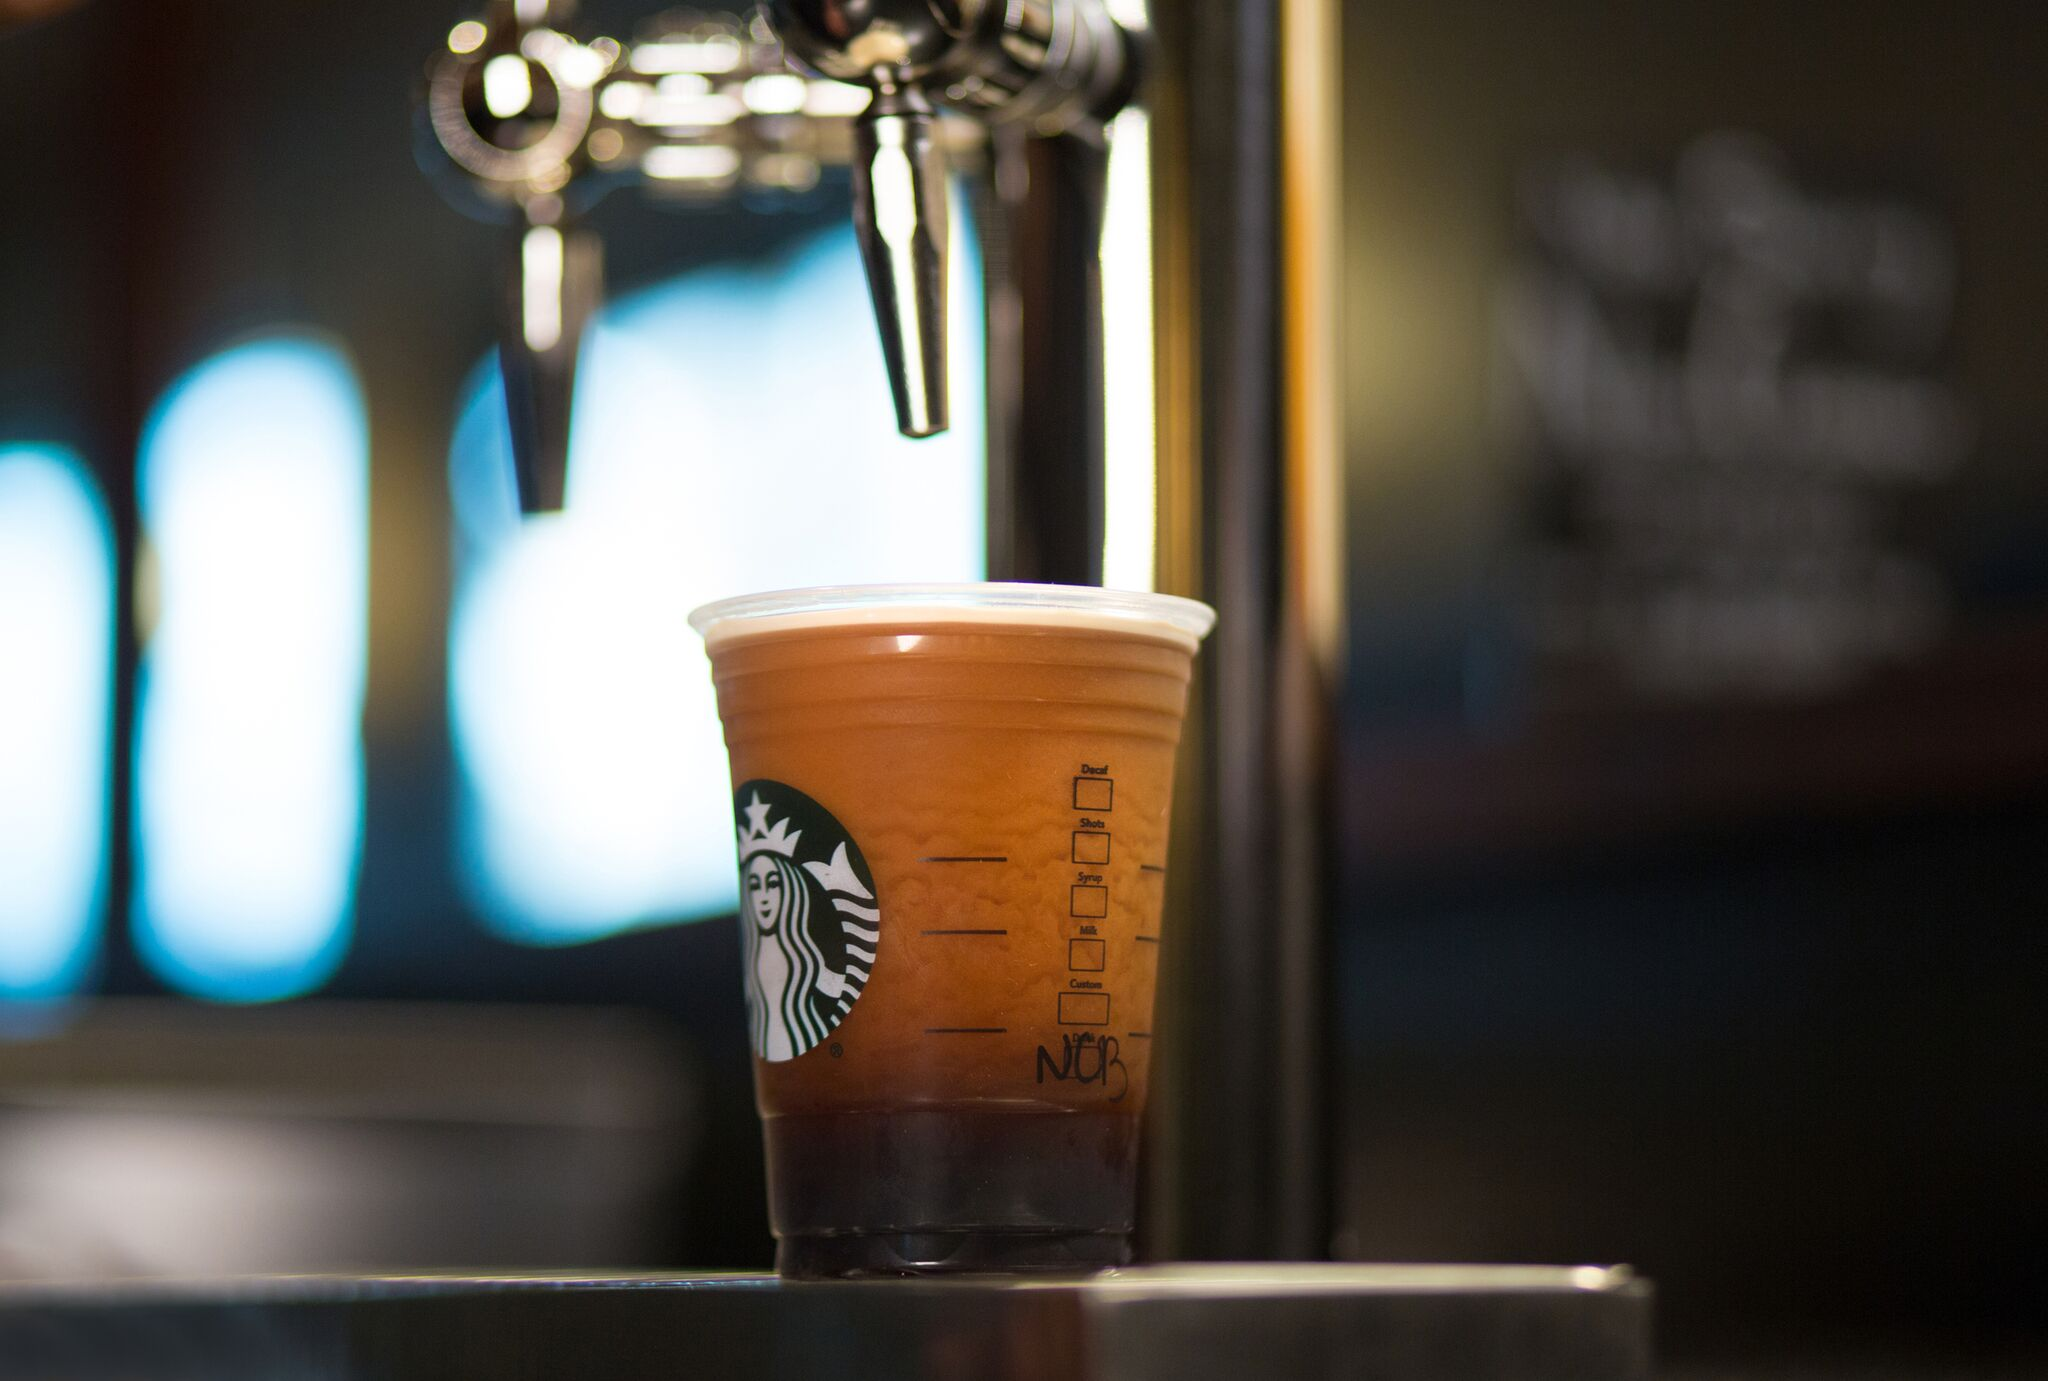 Starbucks Nitro Coffee Here S What You Need To Know Before